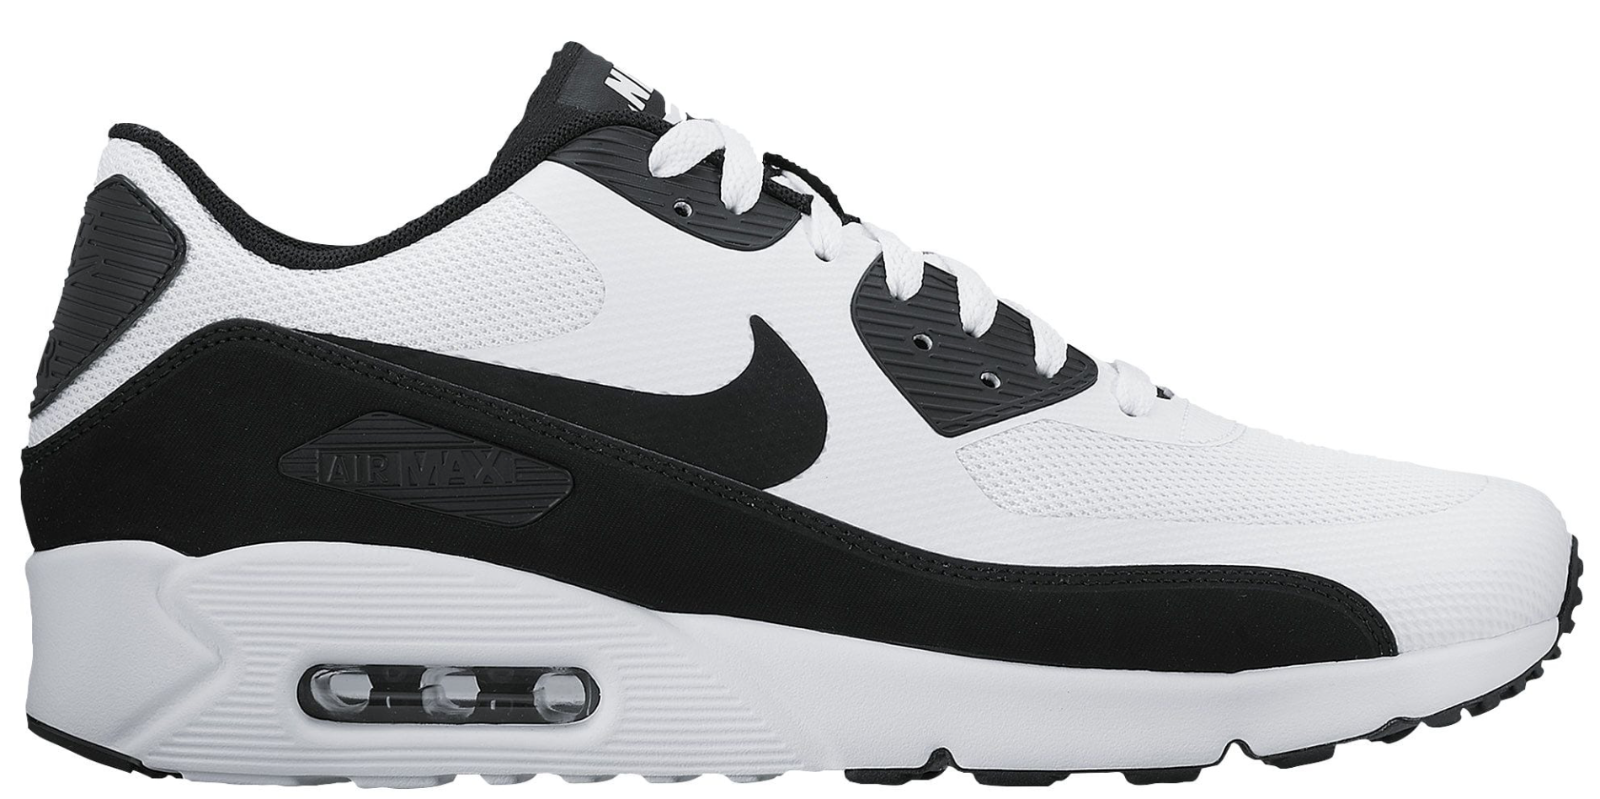 NEW Men's Nike Air Max 90 Ultra 2.0 Shoes Size: 6.5 Color: White/Black